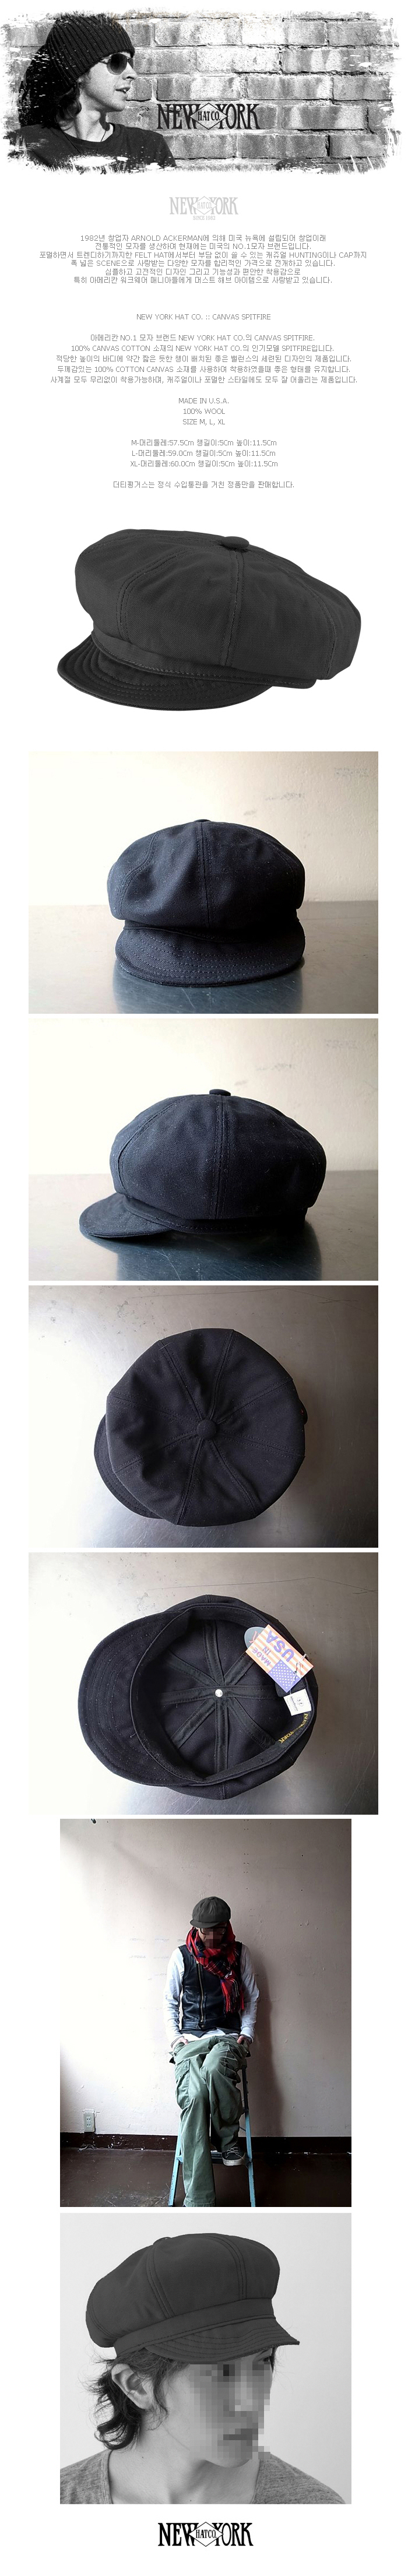 6871bb9a4d7 뉴욕 햇(NEW YORK HAT CO.) 6216 CANVAS SPITFIRE - 79